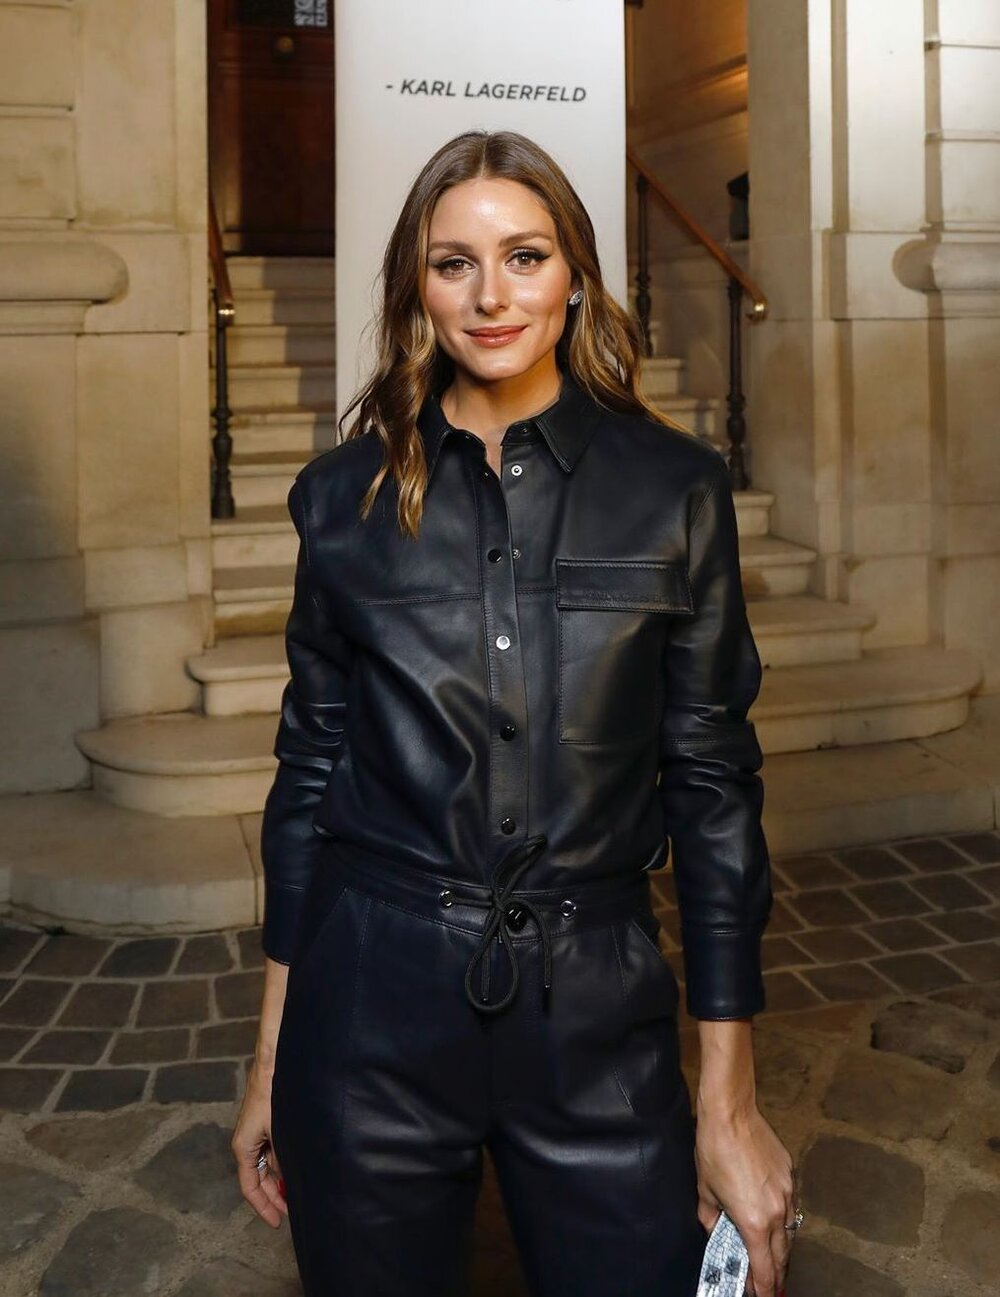 olivia-palermo-karl-lagerfeld-black-leather-outfit.jpg